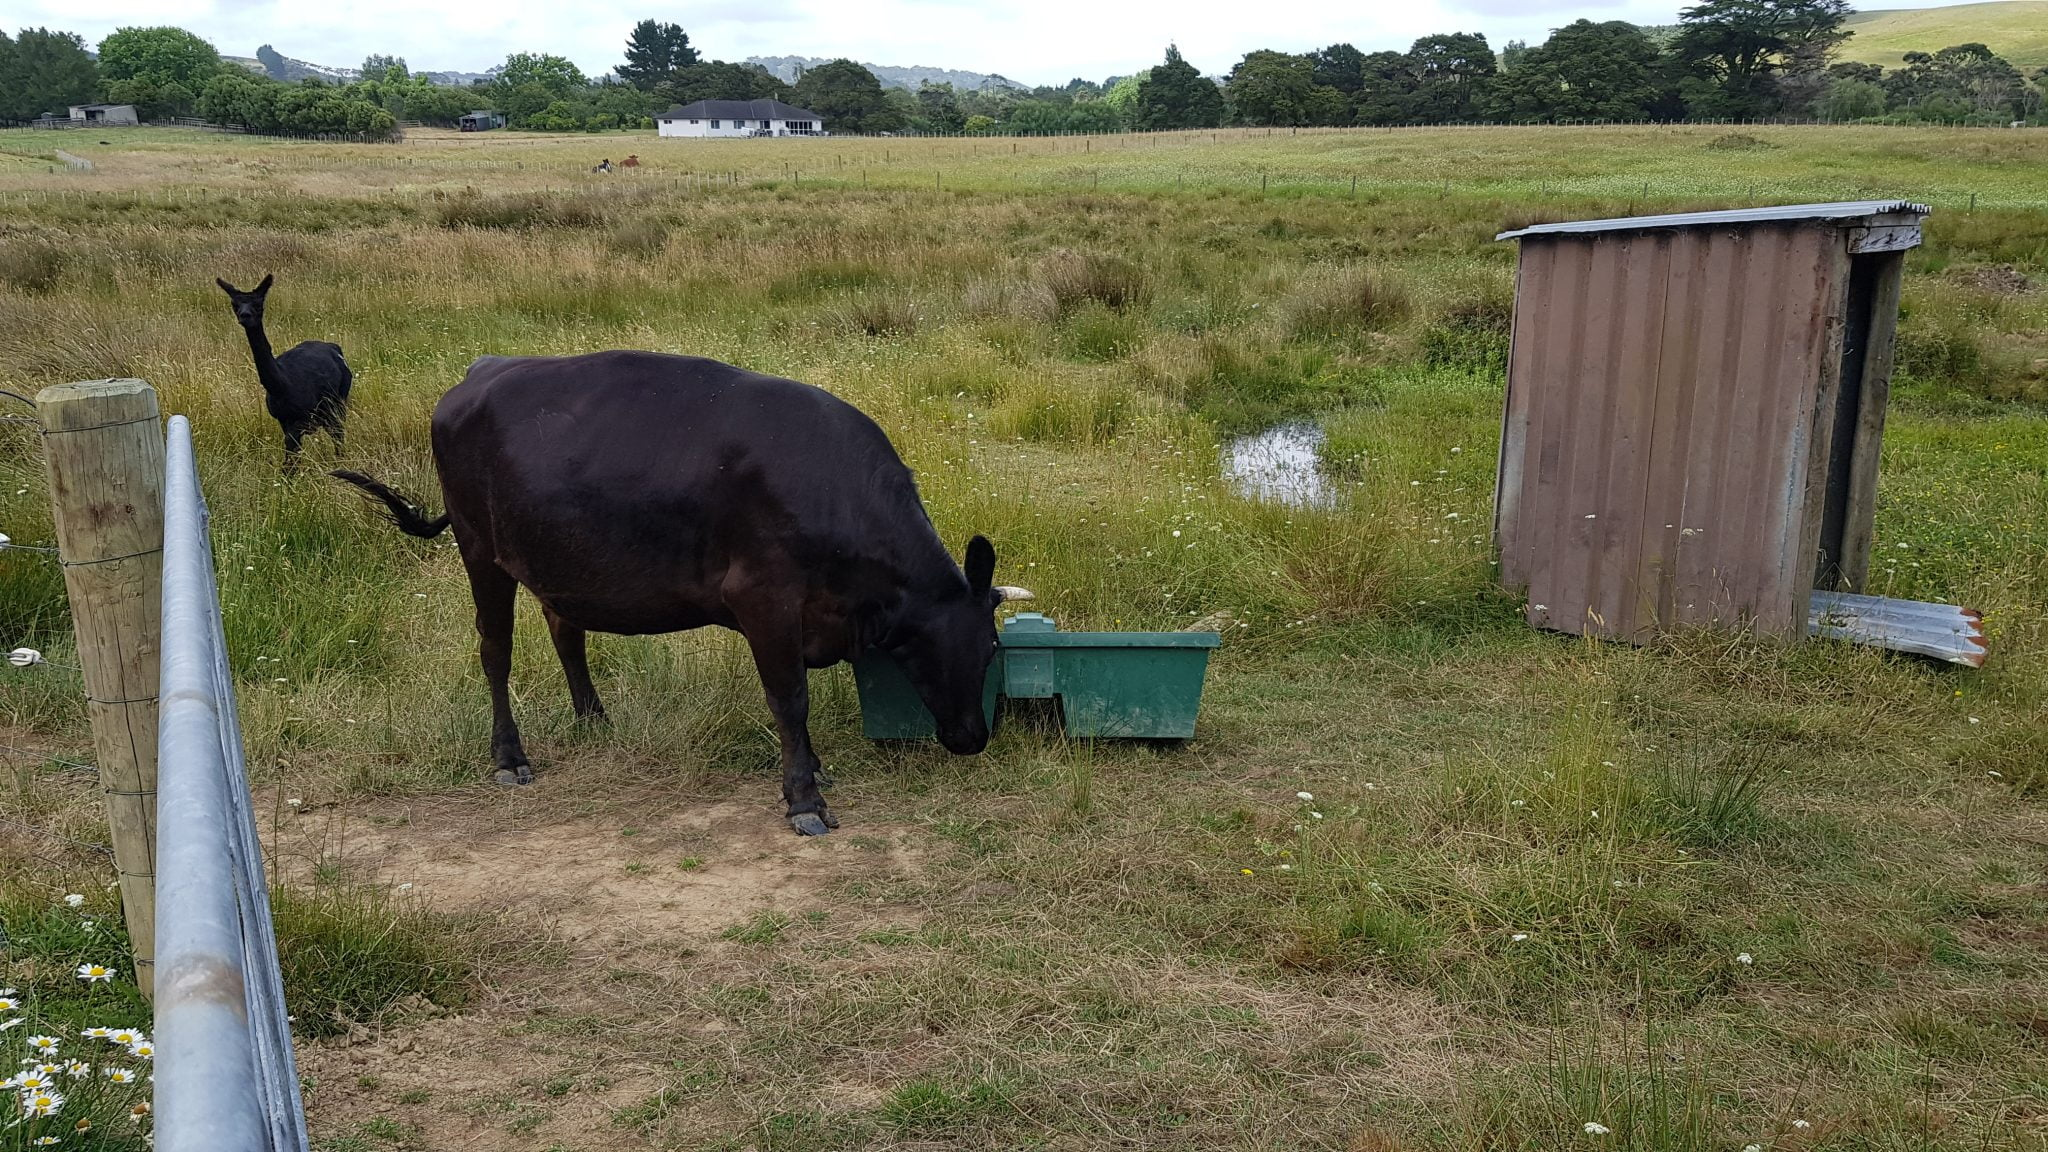 Big black cow with horns pushing around on a green plastic square water trough